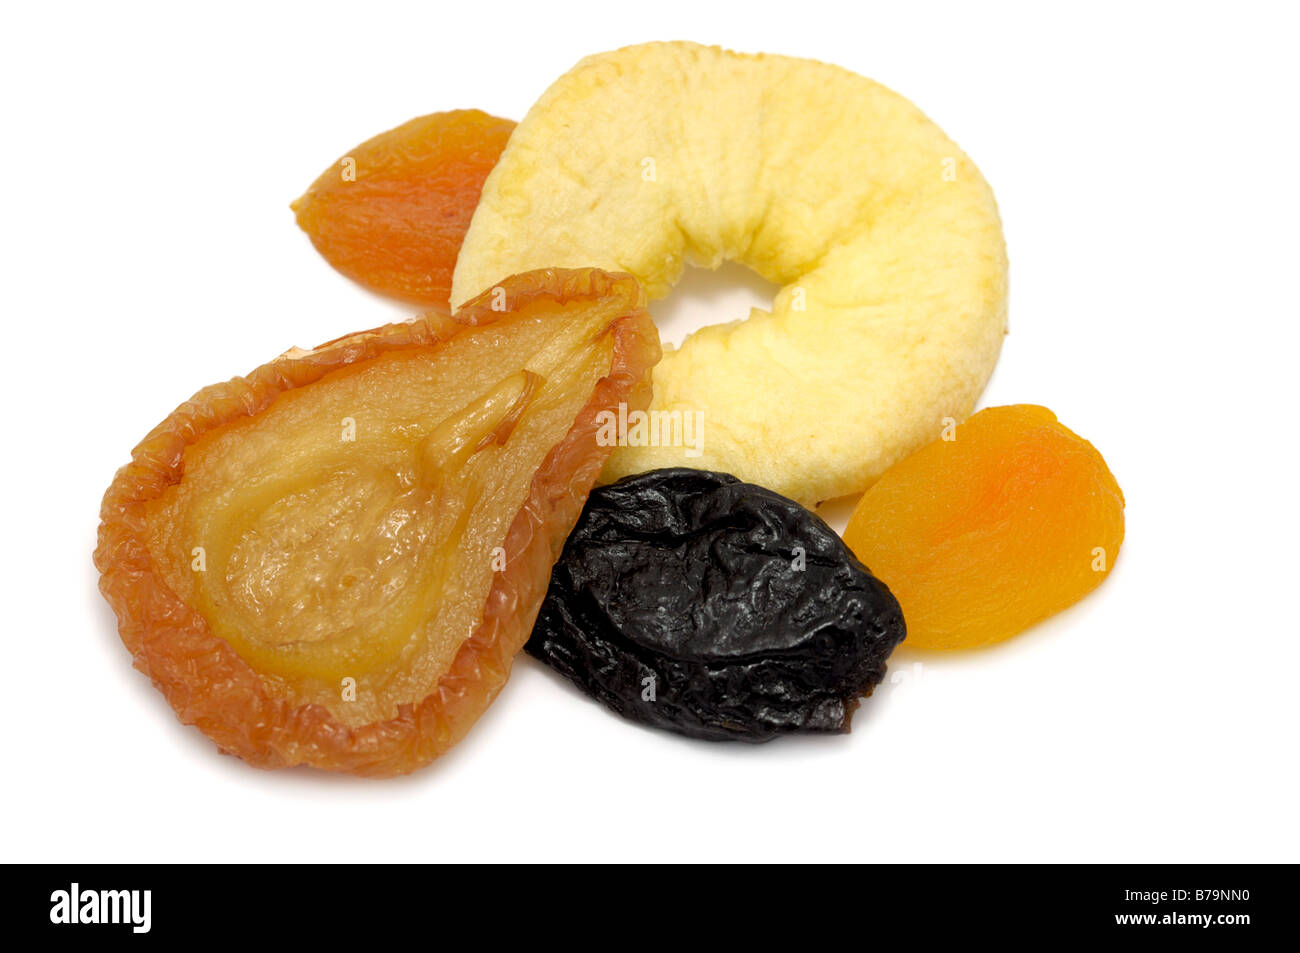 Dried Fruit, Pear, Apple Ring, Prune, Apricots - Stock Image